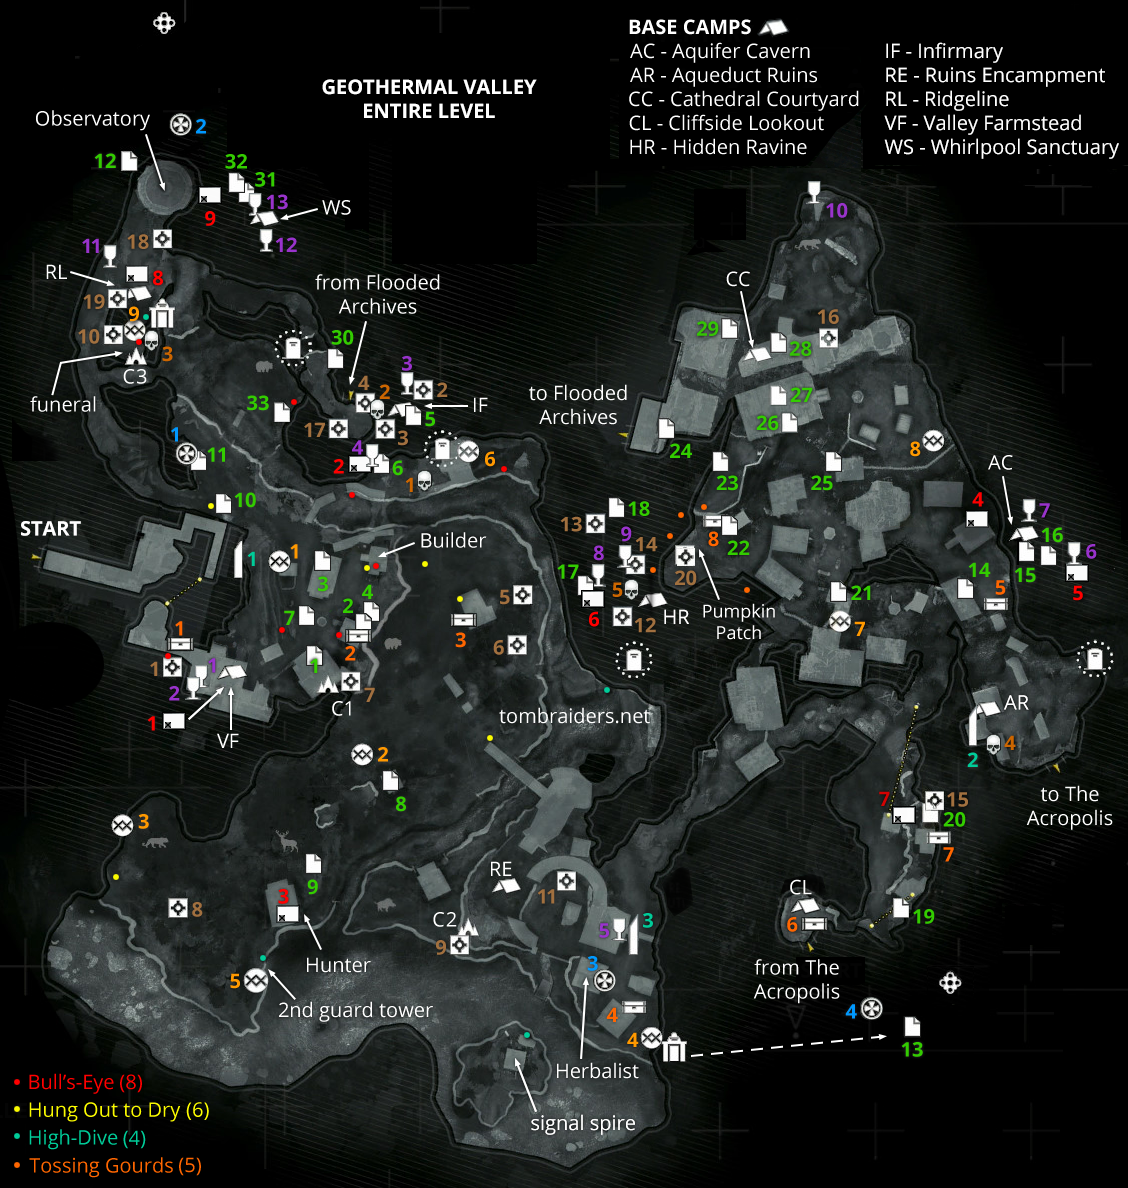 geothermal valley archivist maps rise of the tomb raider